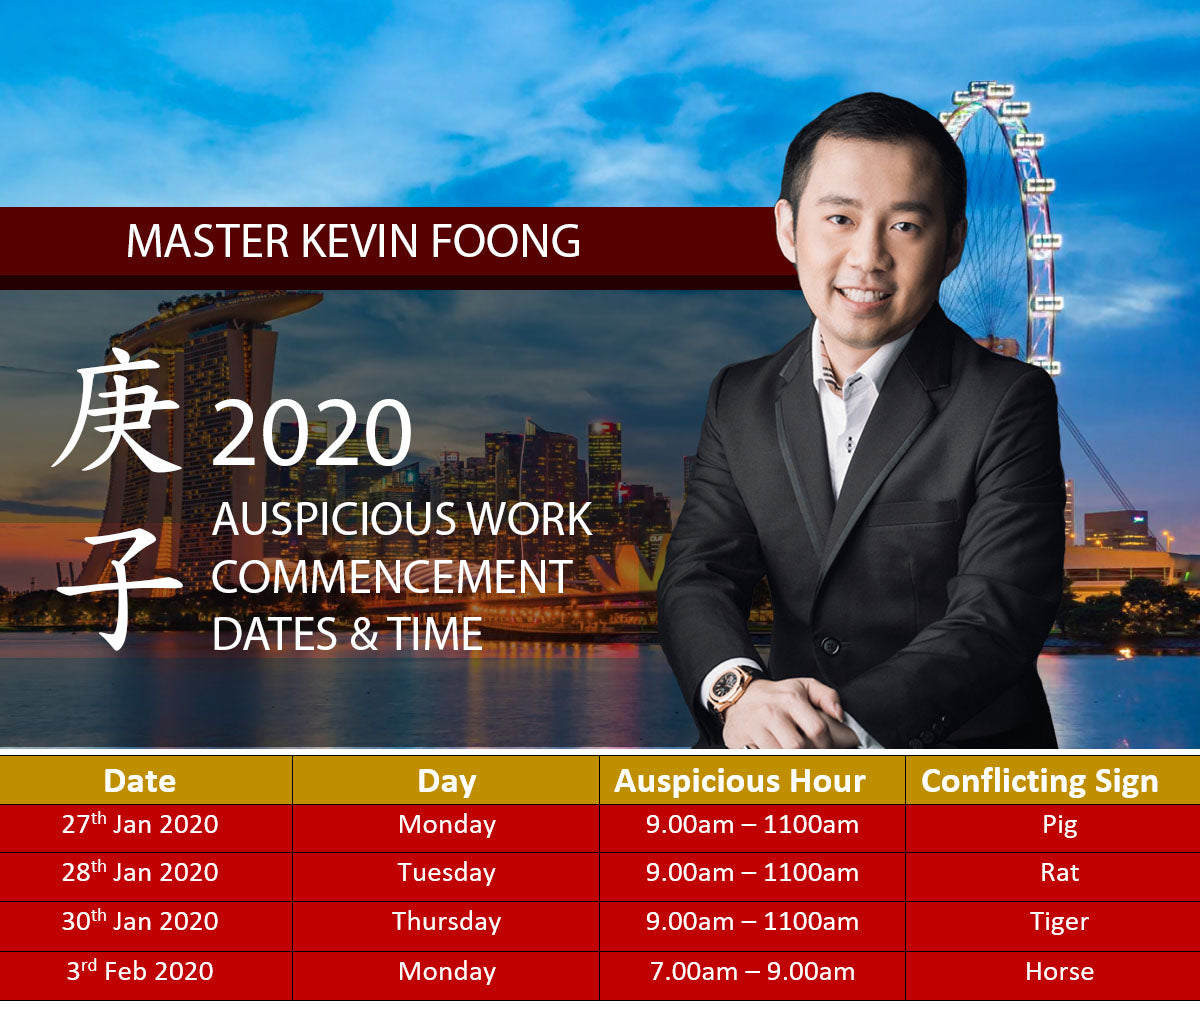 Auspicious Date and Time For 2020 Work Commencement